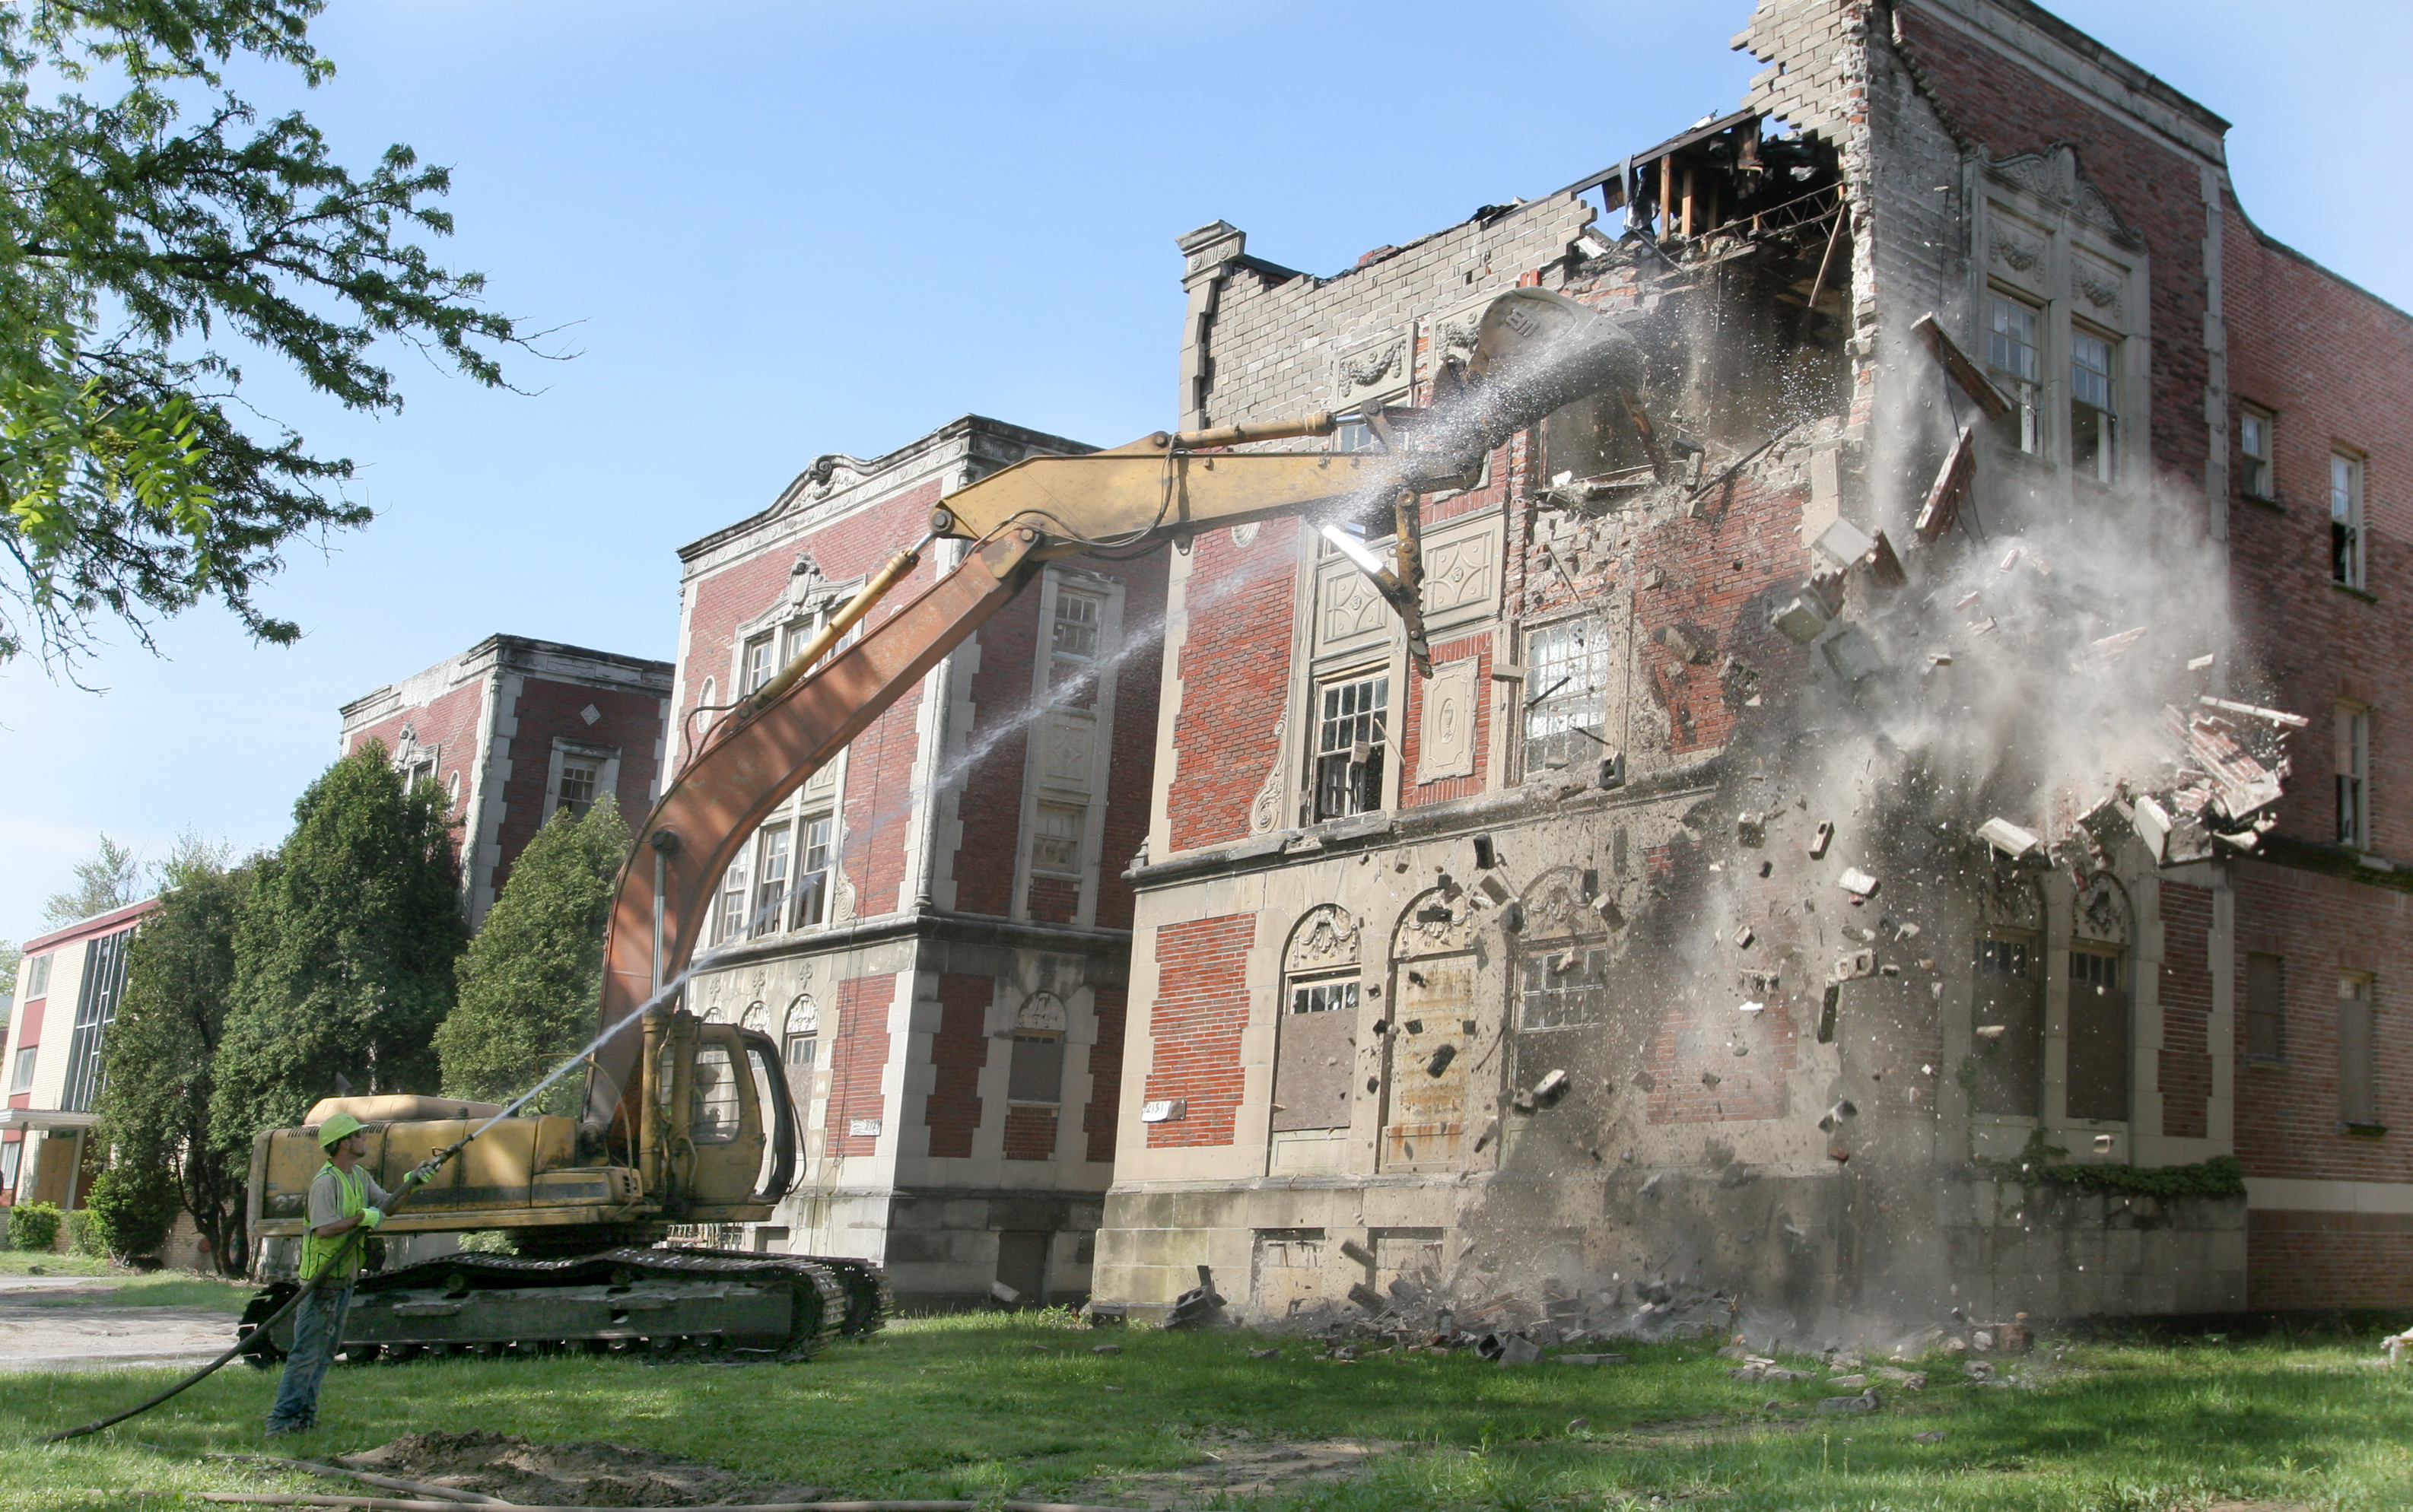 2 Vacant Apartment Buildings In Old West End Meet Wrecking Ball